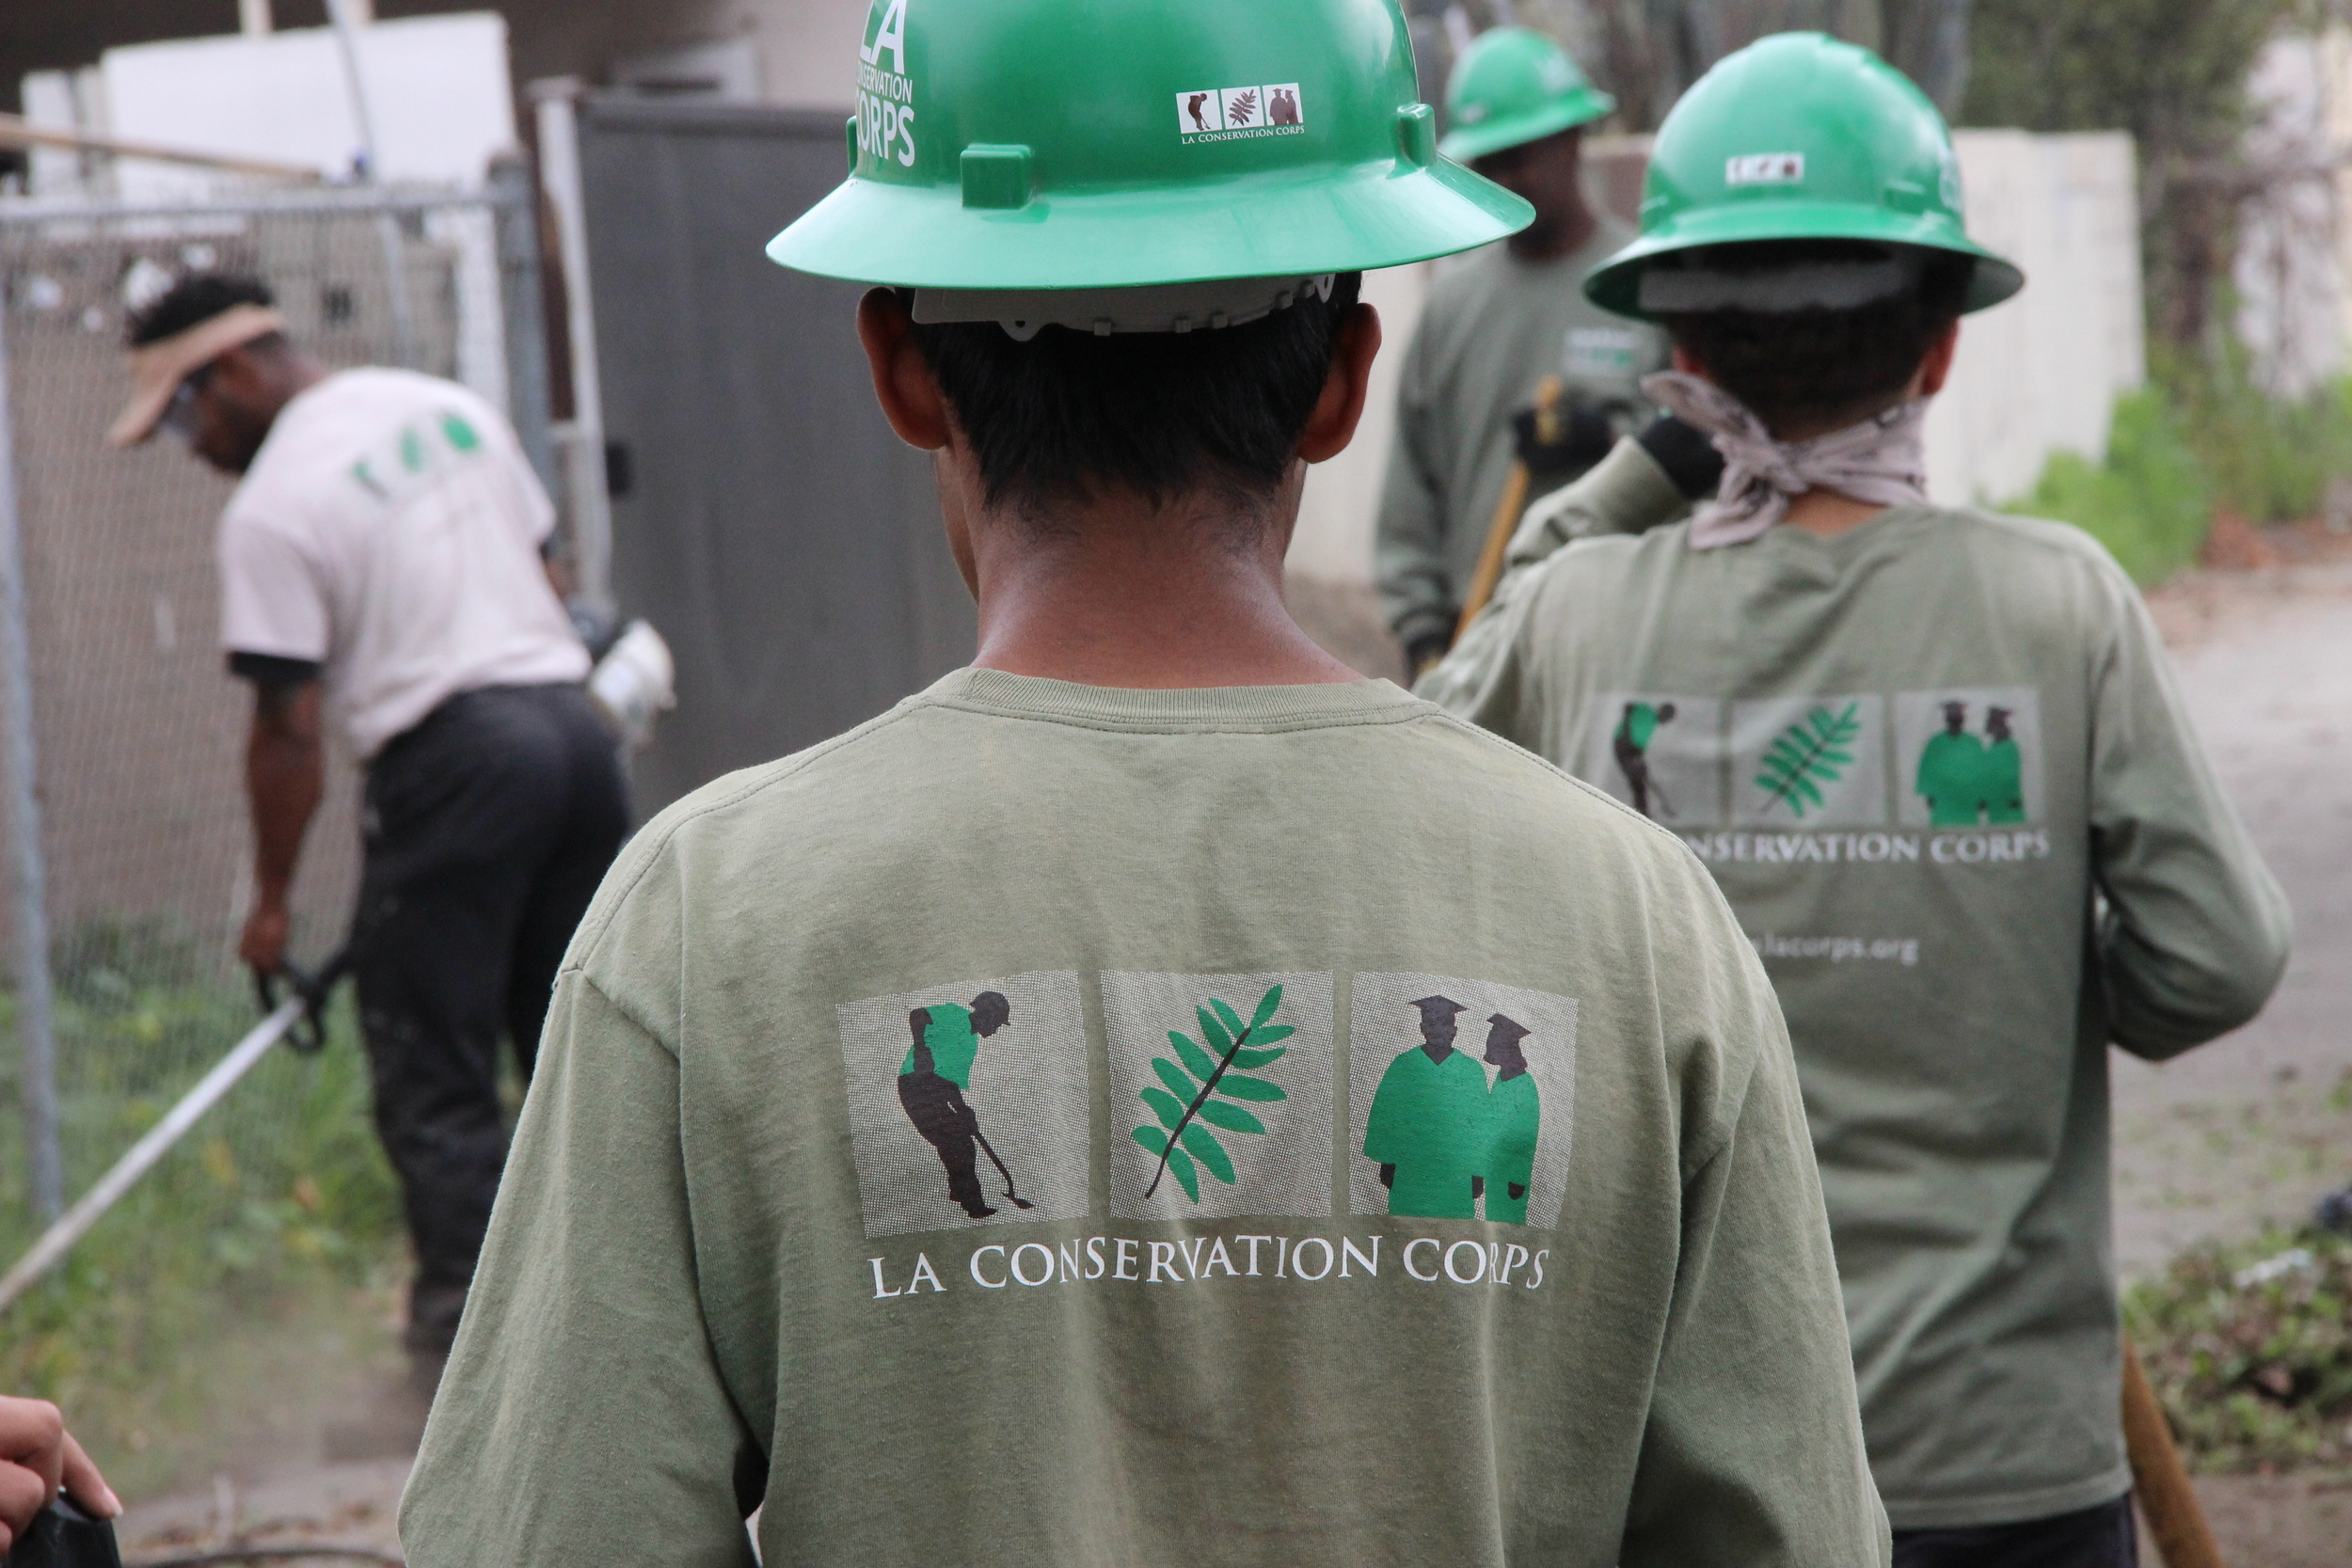 The primary mission of the Los Angeles Conservation Corps is to provide at-risk young adults and school-aged youth with opportunities for success through job skills training, education and work experience with an emphasis on conservation and service projects that benefit the community.